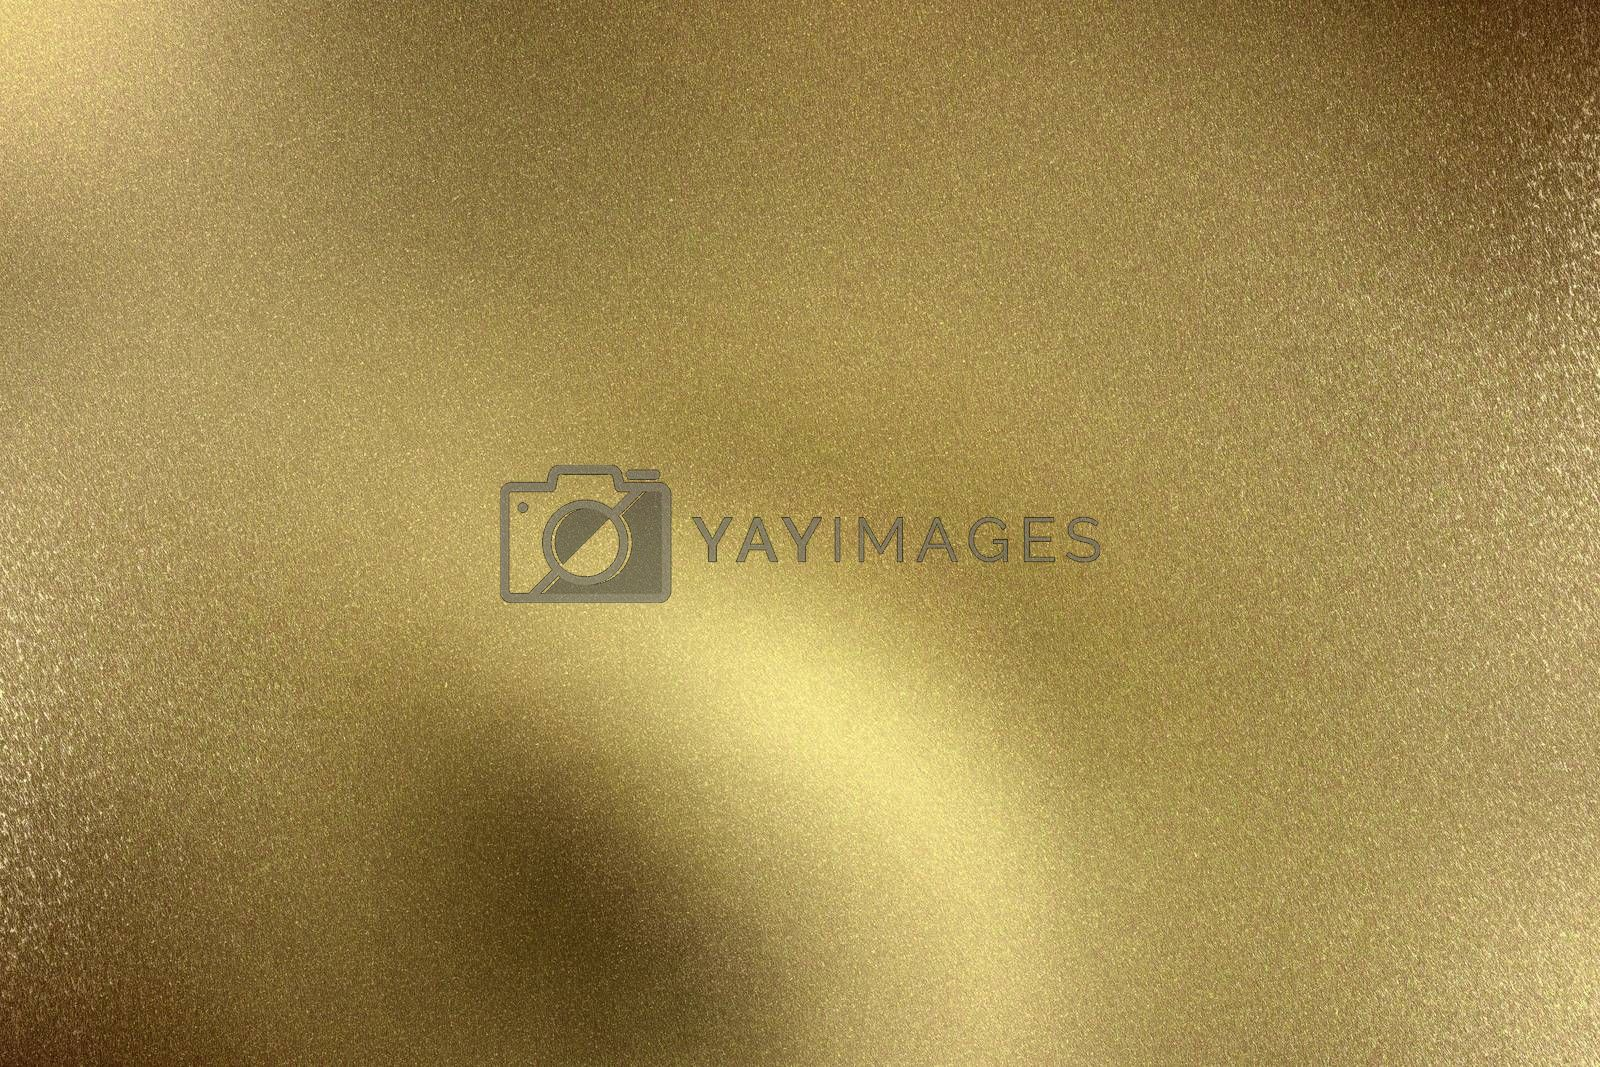 Royalty free image of Glowing gold wave metal plate, abstract texture background by mouu007